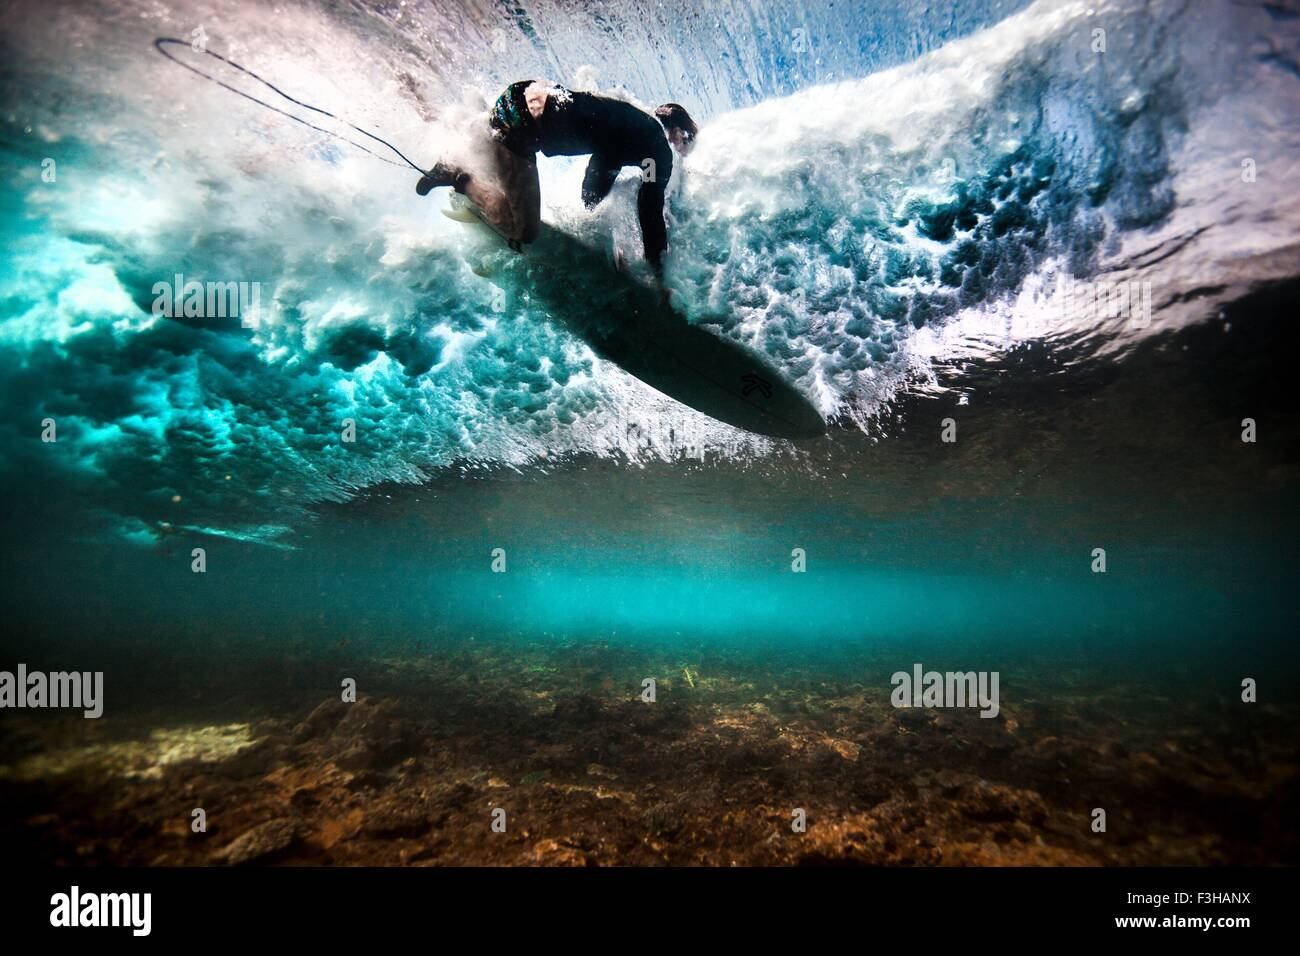 Underwater view of surfer falling through water after catching a wave on a shallow reef in Bali, Indonesia - Stock Image